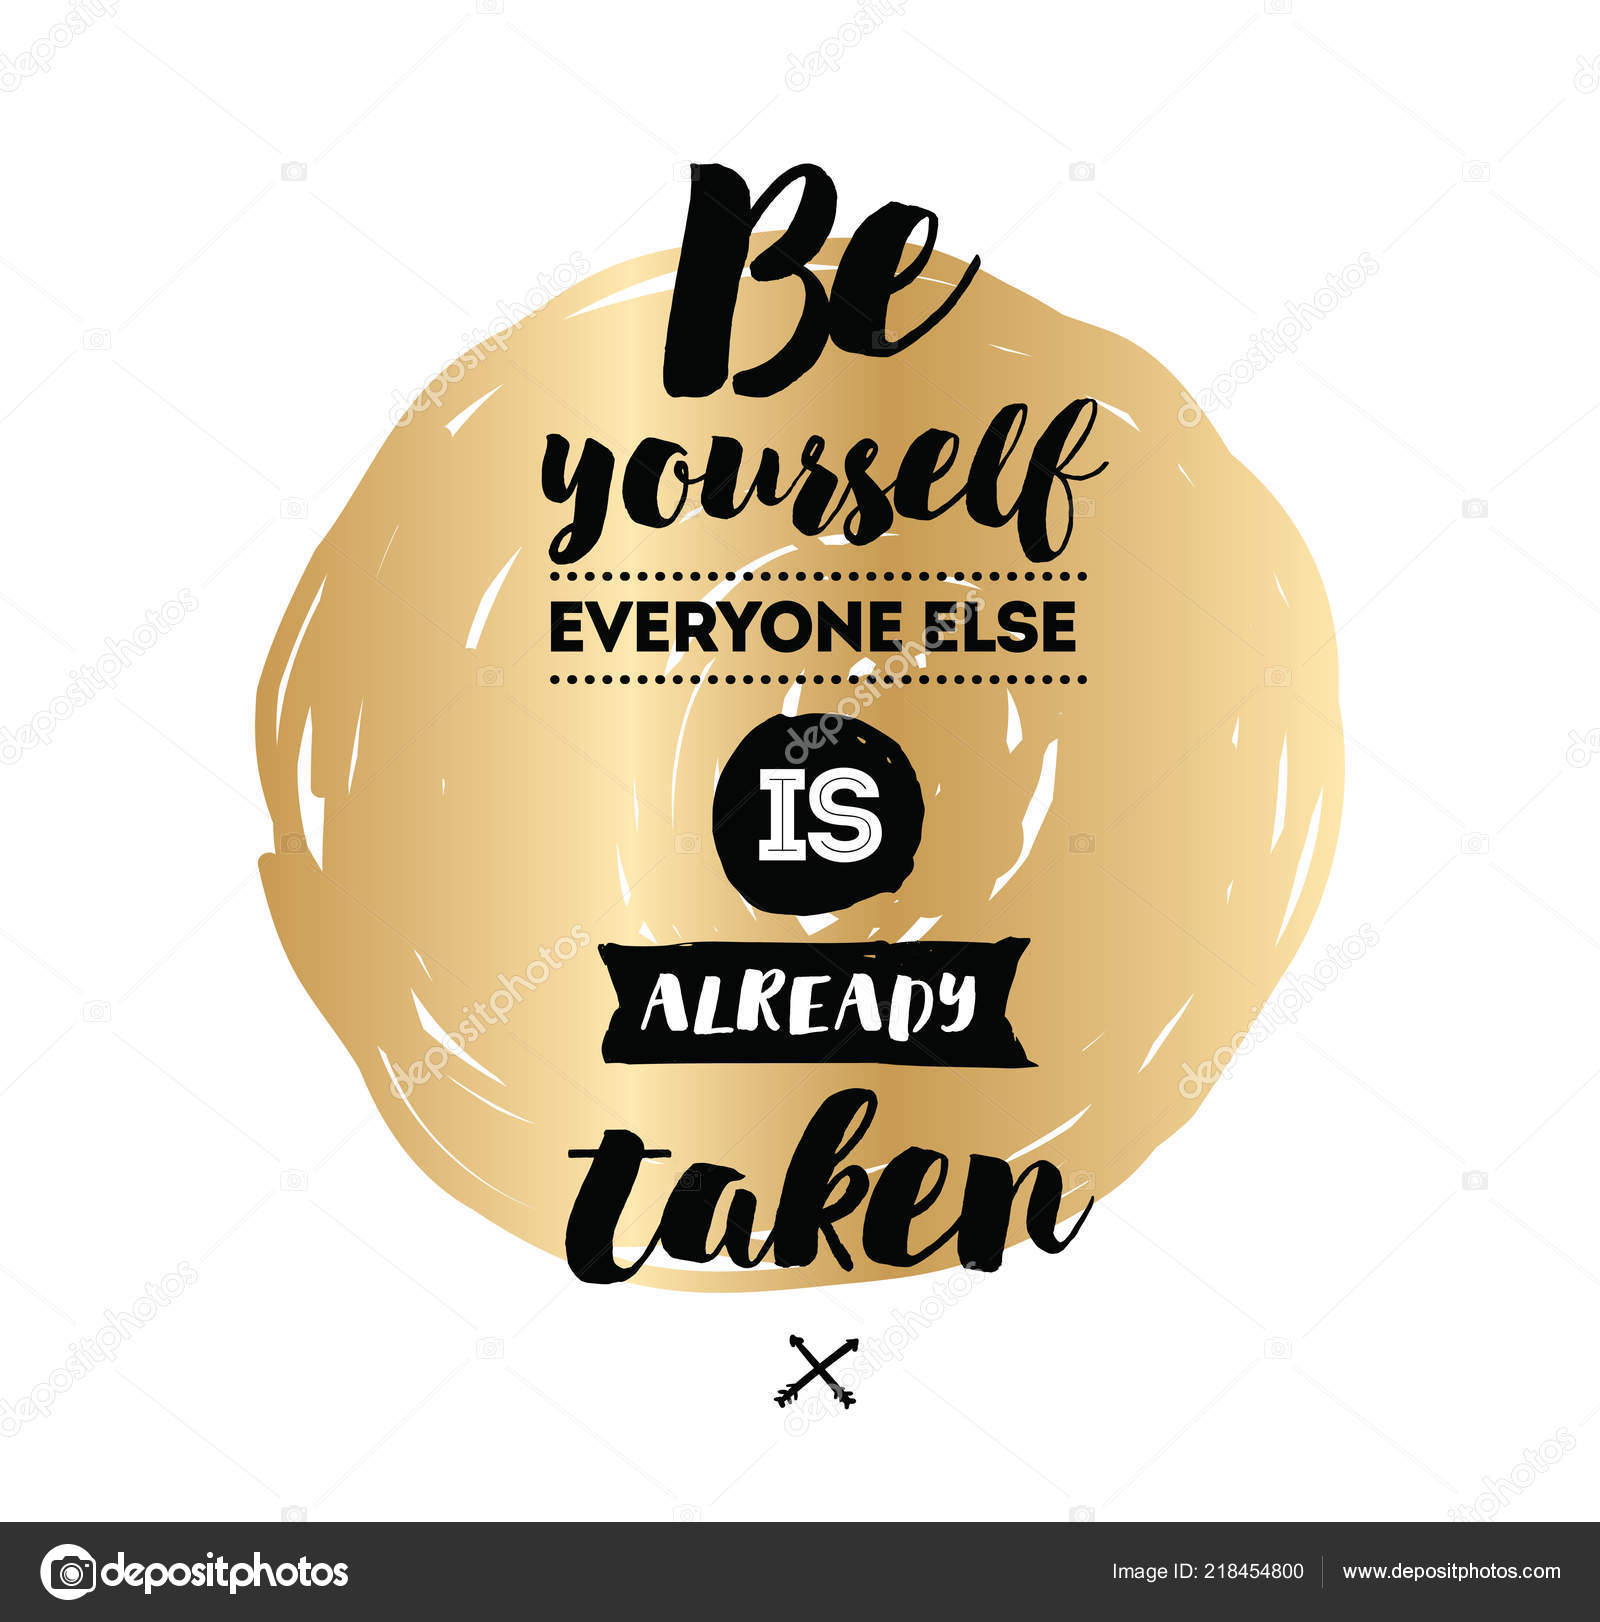 Yourself Everyone Else Already Taken Inspirational Quote Motivation